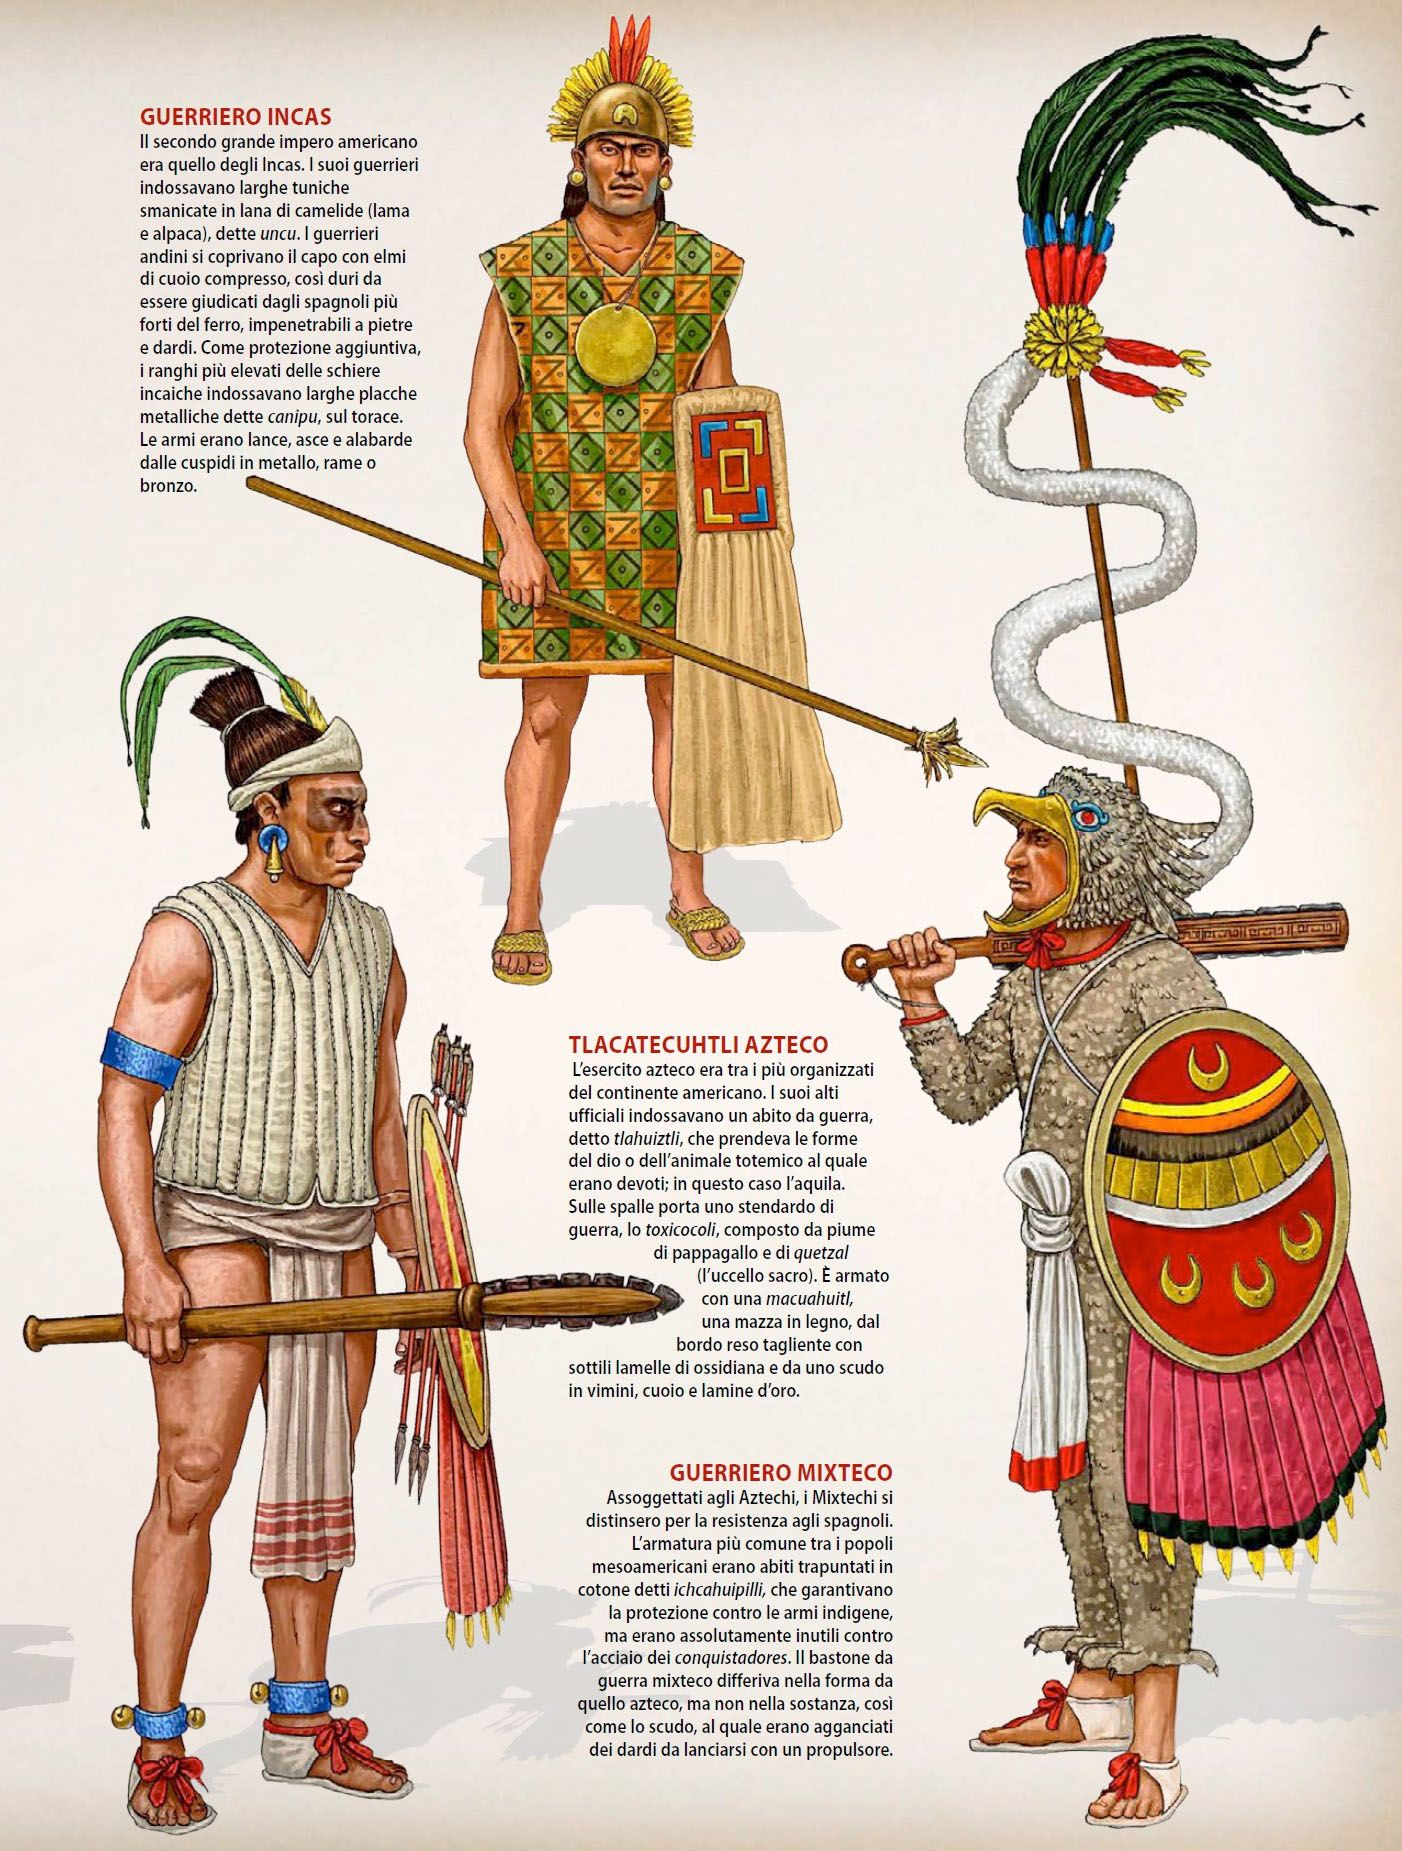 a history of the aztecs becoming a dominant power in mesoamerica The aztec empire flourished between c 1345 and 1521 ce and, at its greatest extent, covered most of northern mesoamerica aztec warriors were able to dominate their neighbouring states and permit rulers such as motecuhzoma ii to impose aztec ideals and religion across mexico.